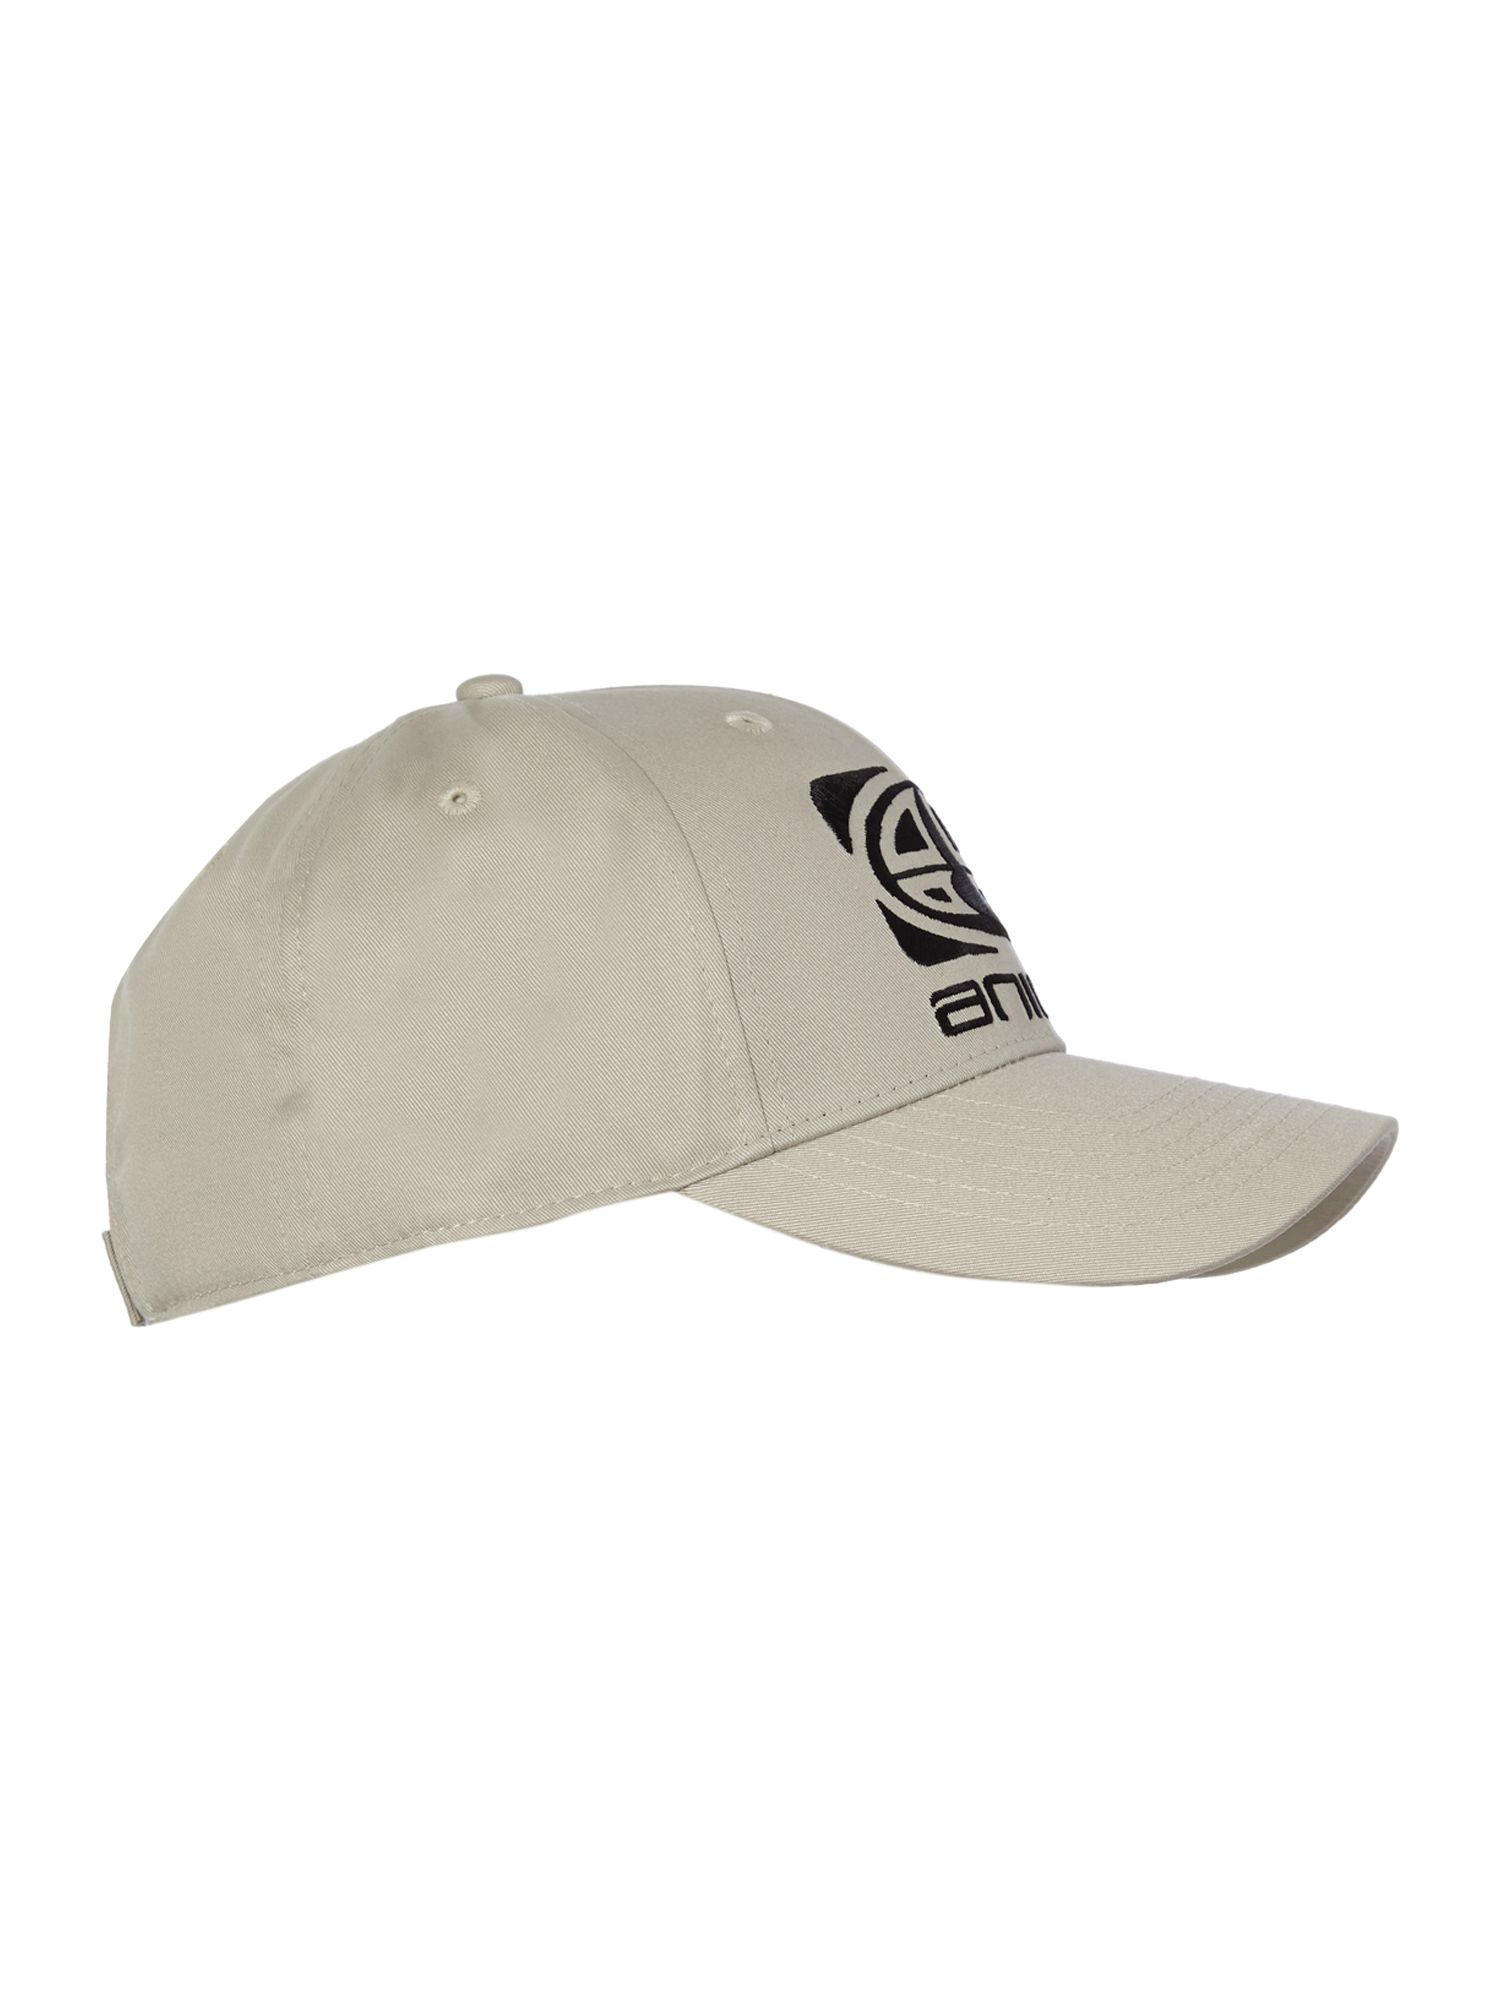 Magen adjustable cap